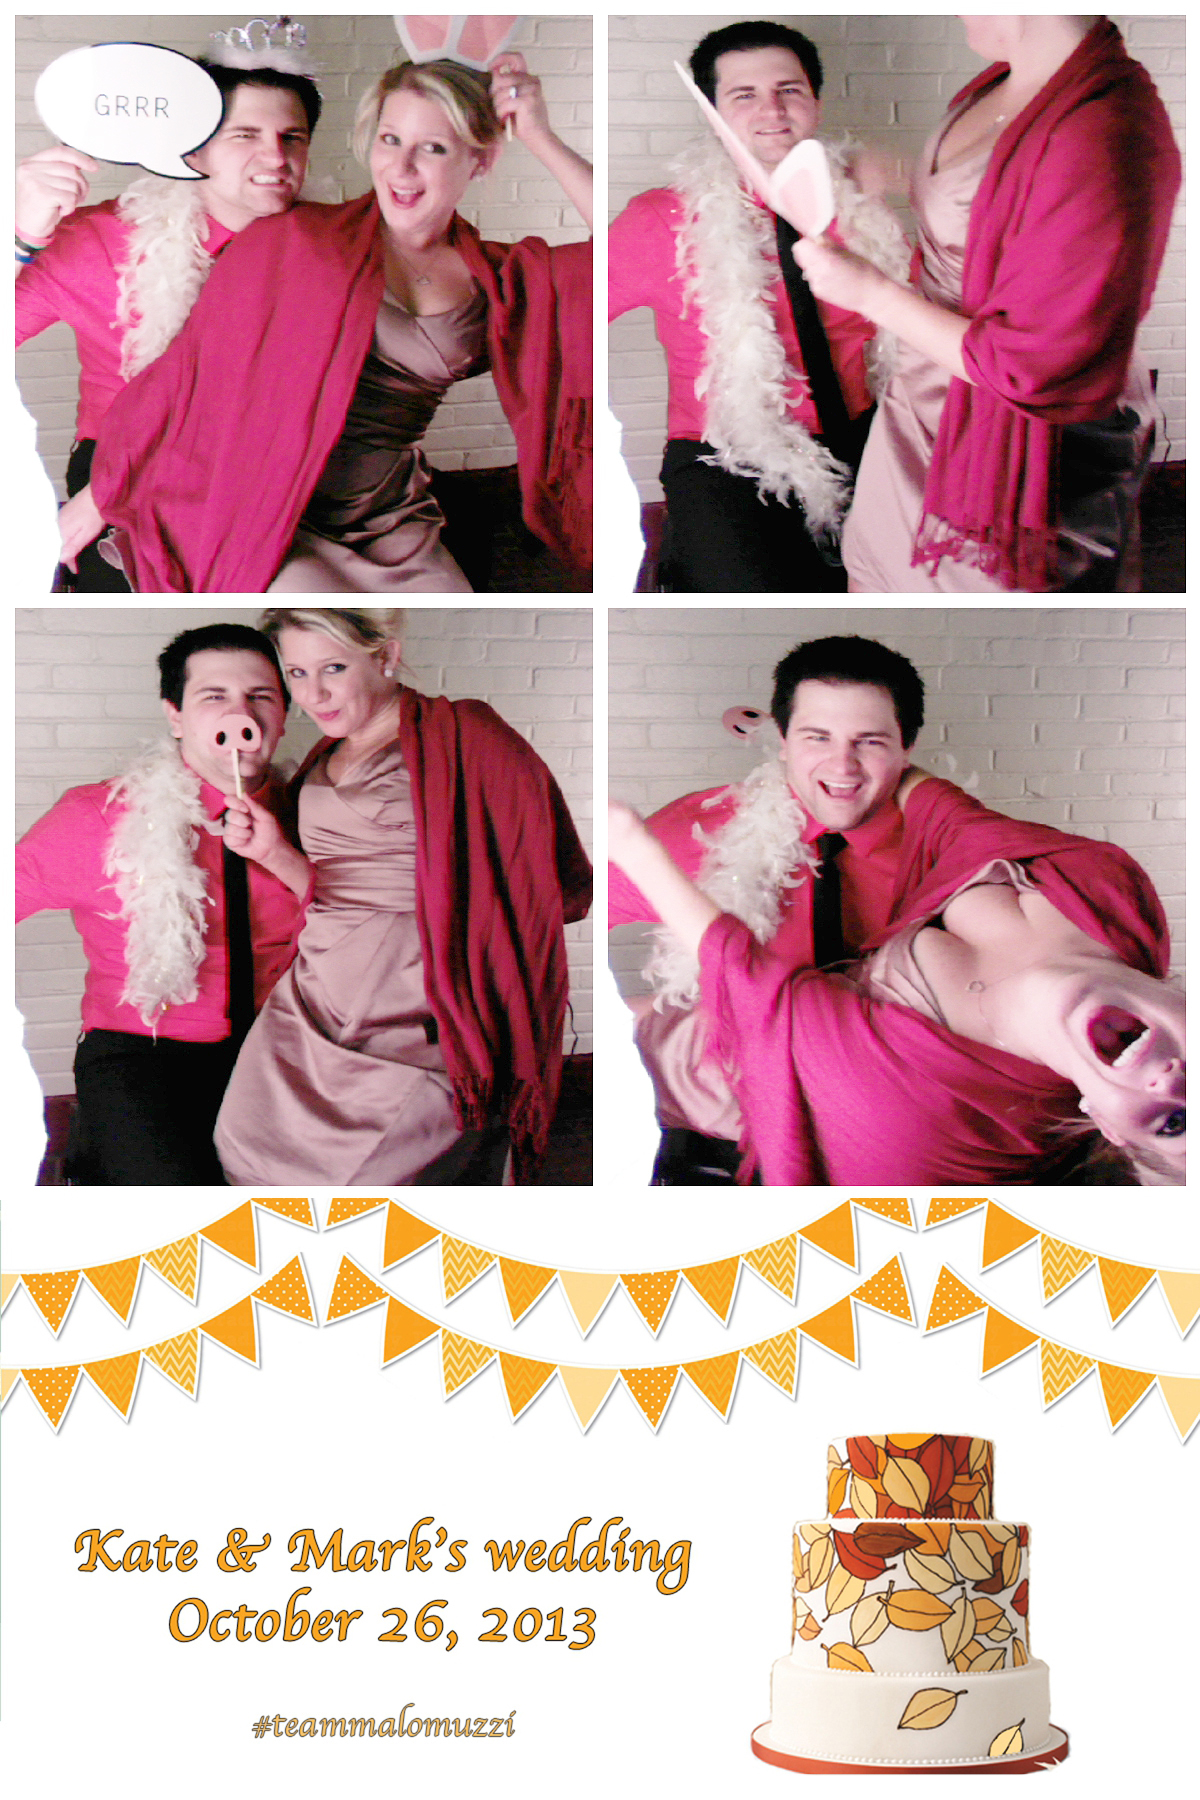 Lauren&Chris@PhotoBooth